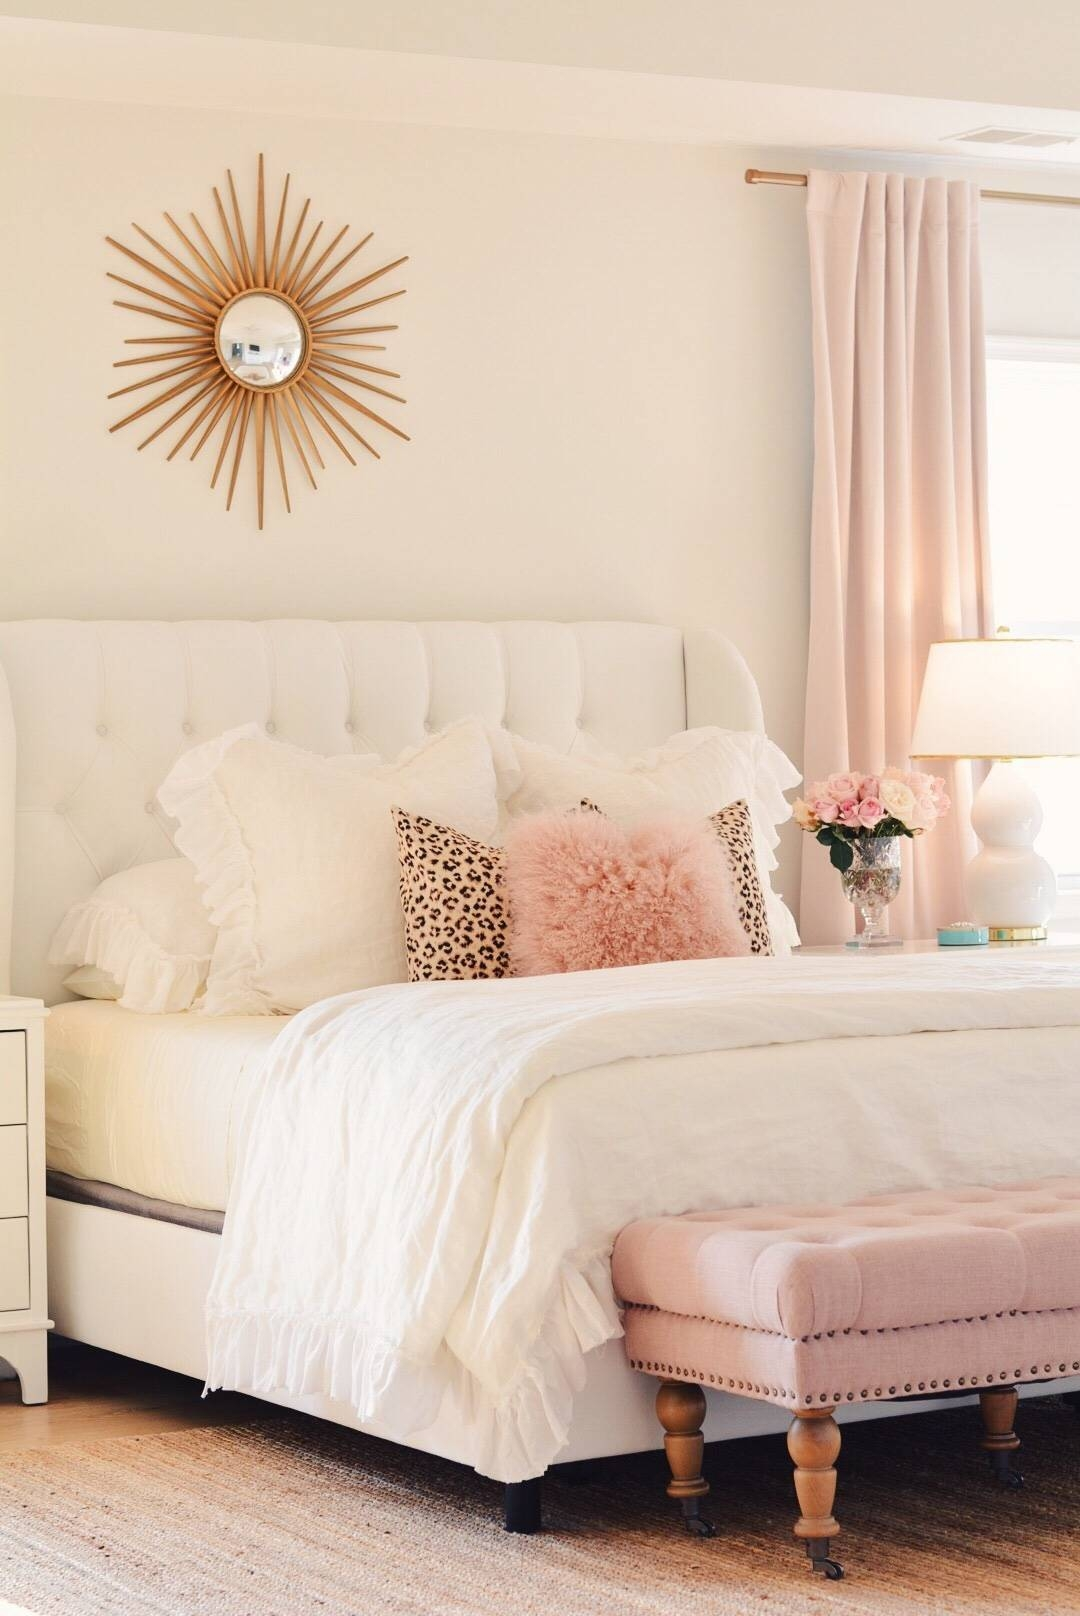 White tufted headboard and pink bench